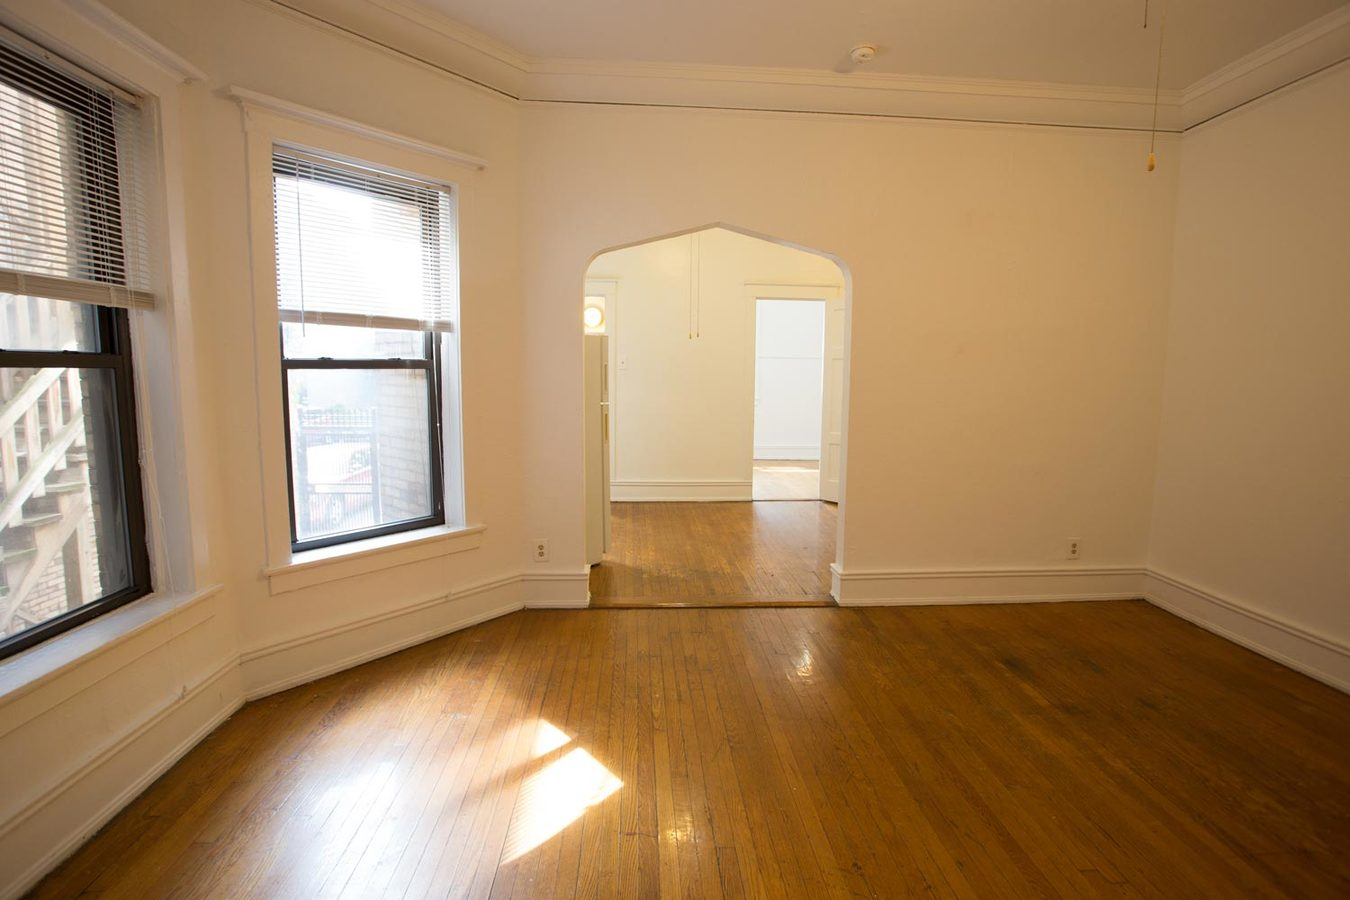 1 Bedroom 1 Bathroom Apartment for rent at 5474-5480 S. Hyde Park Boulevard in Chicago, IL